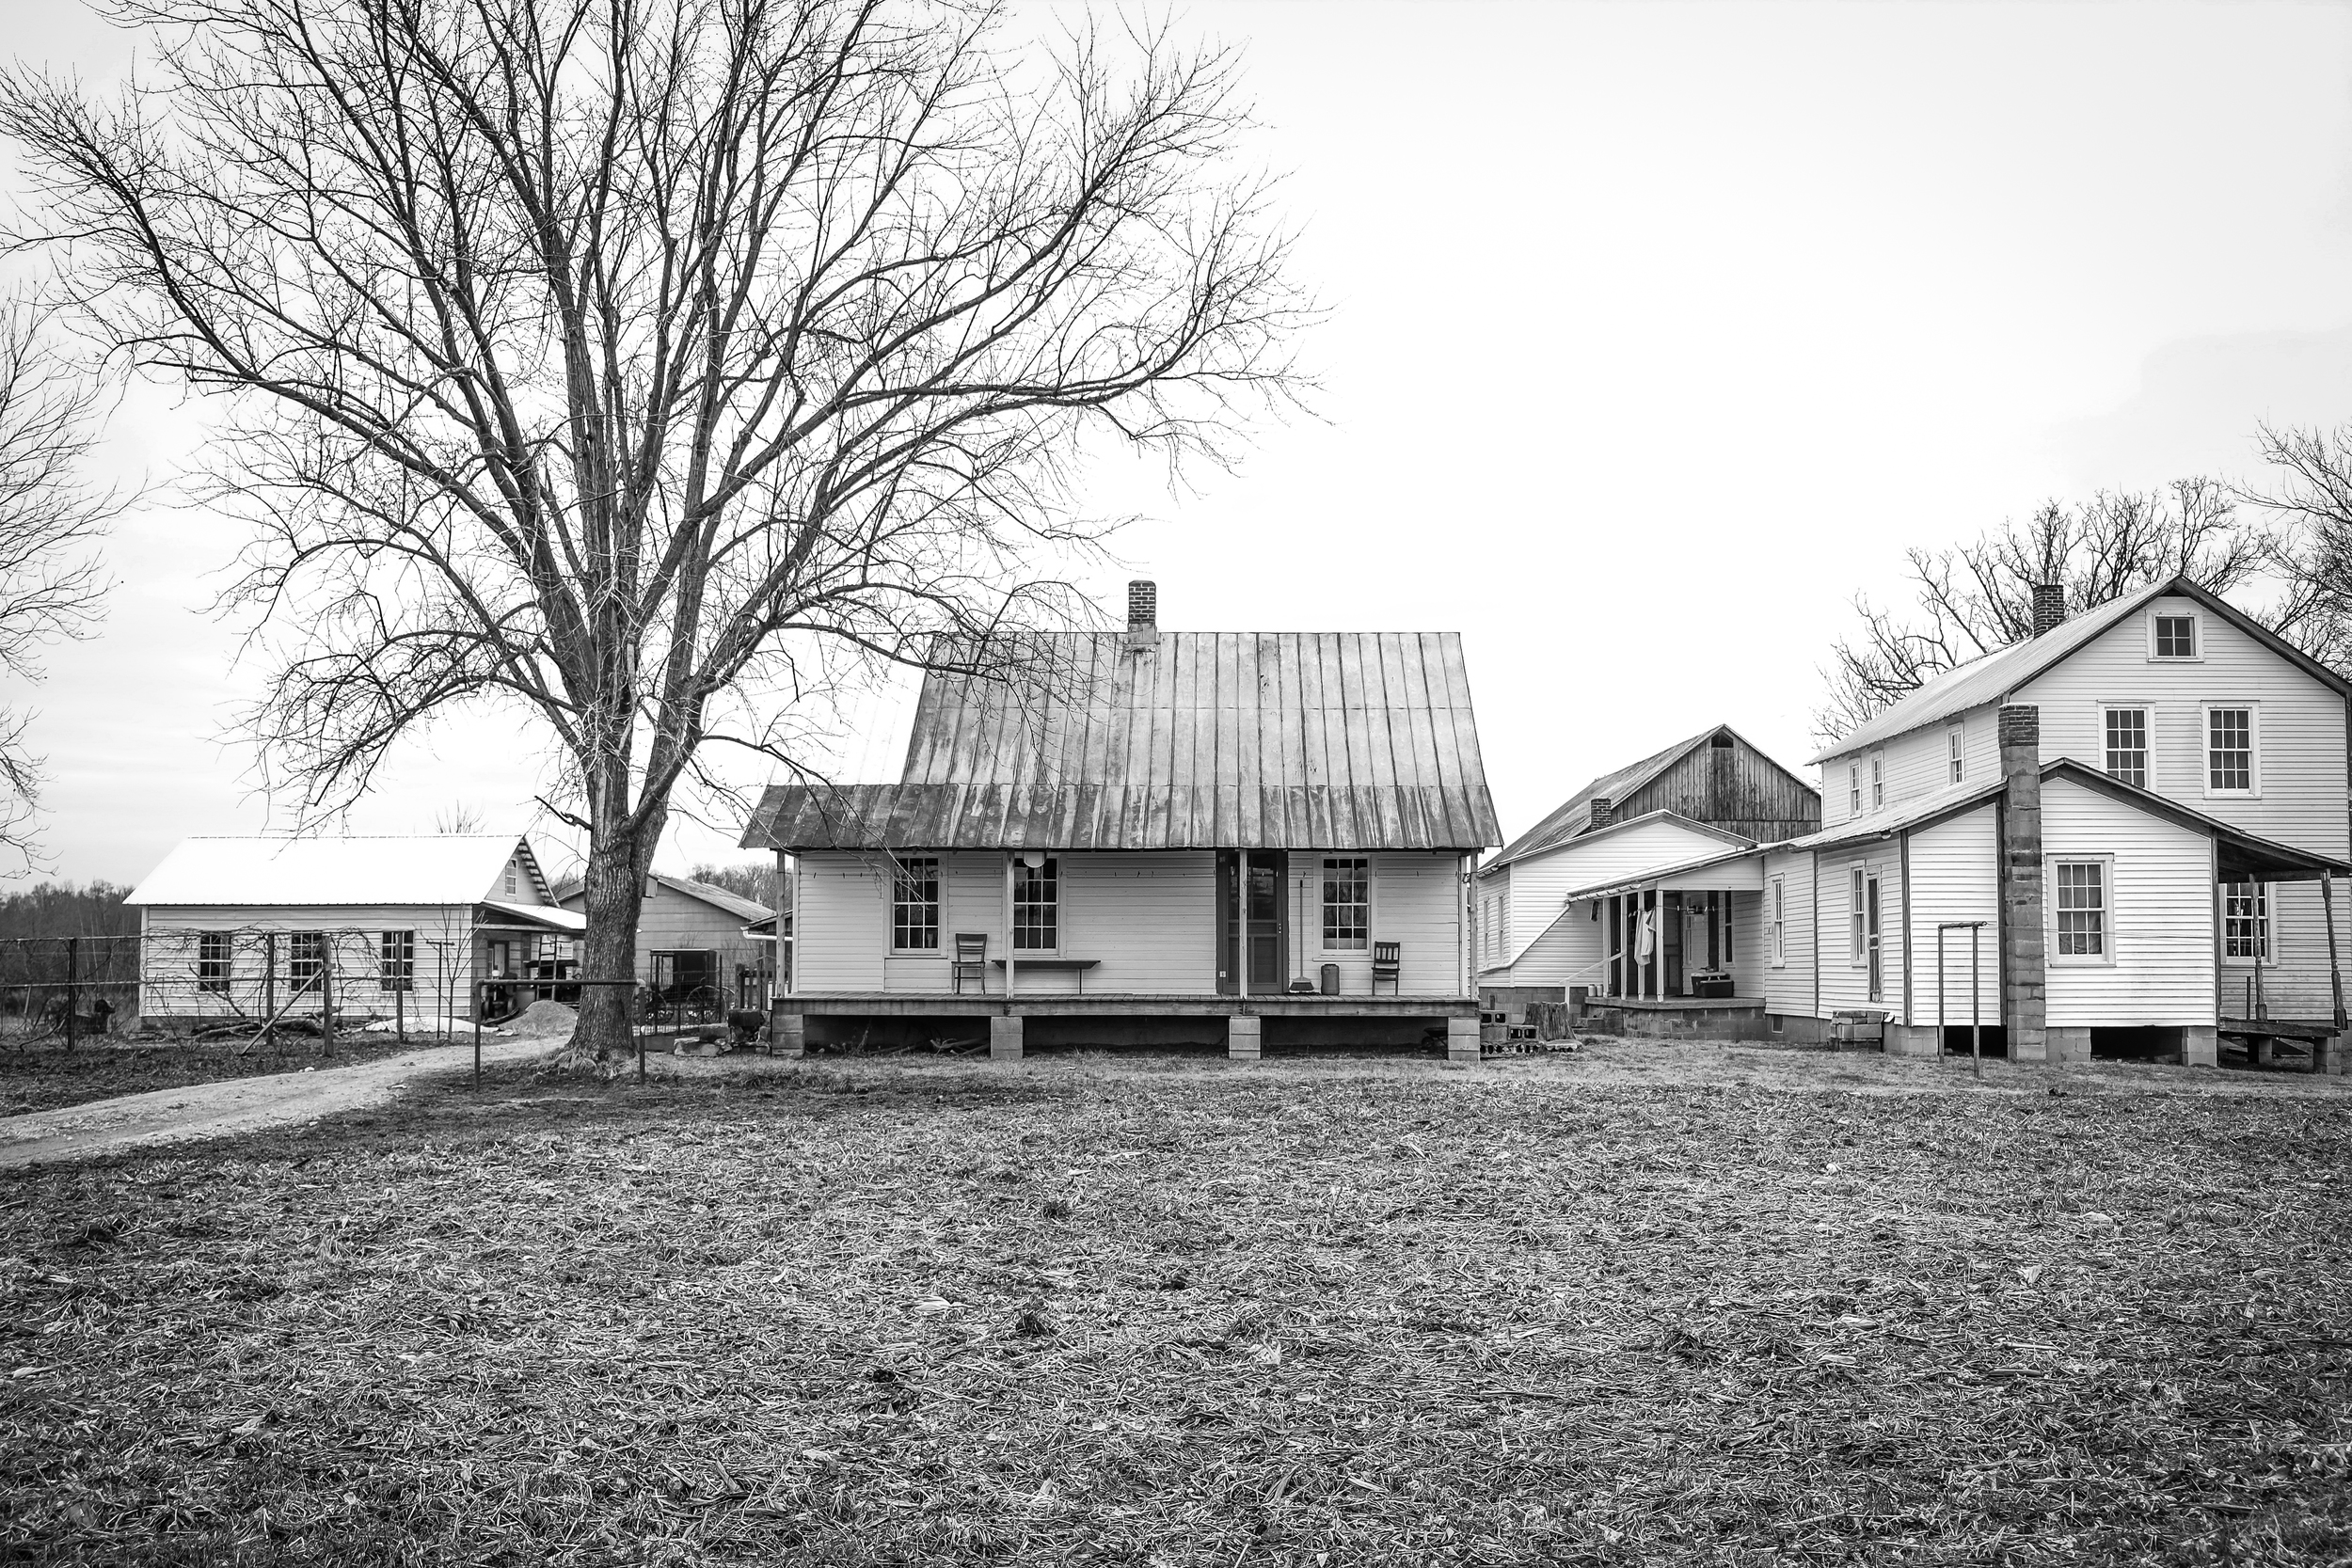 Amish Home BW 3 (1 of 1).jpg